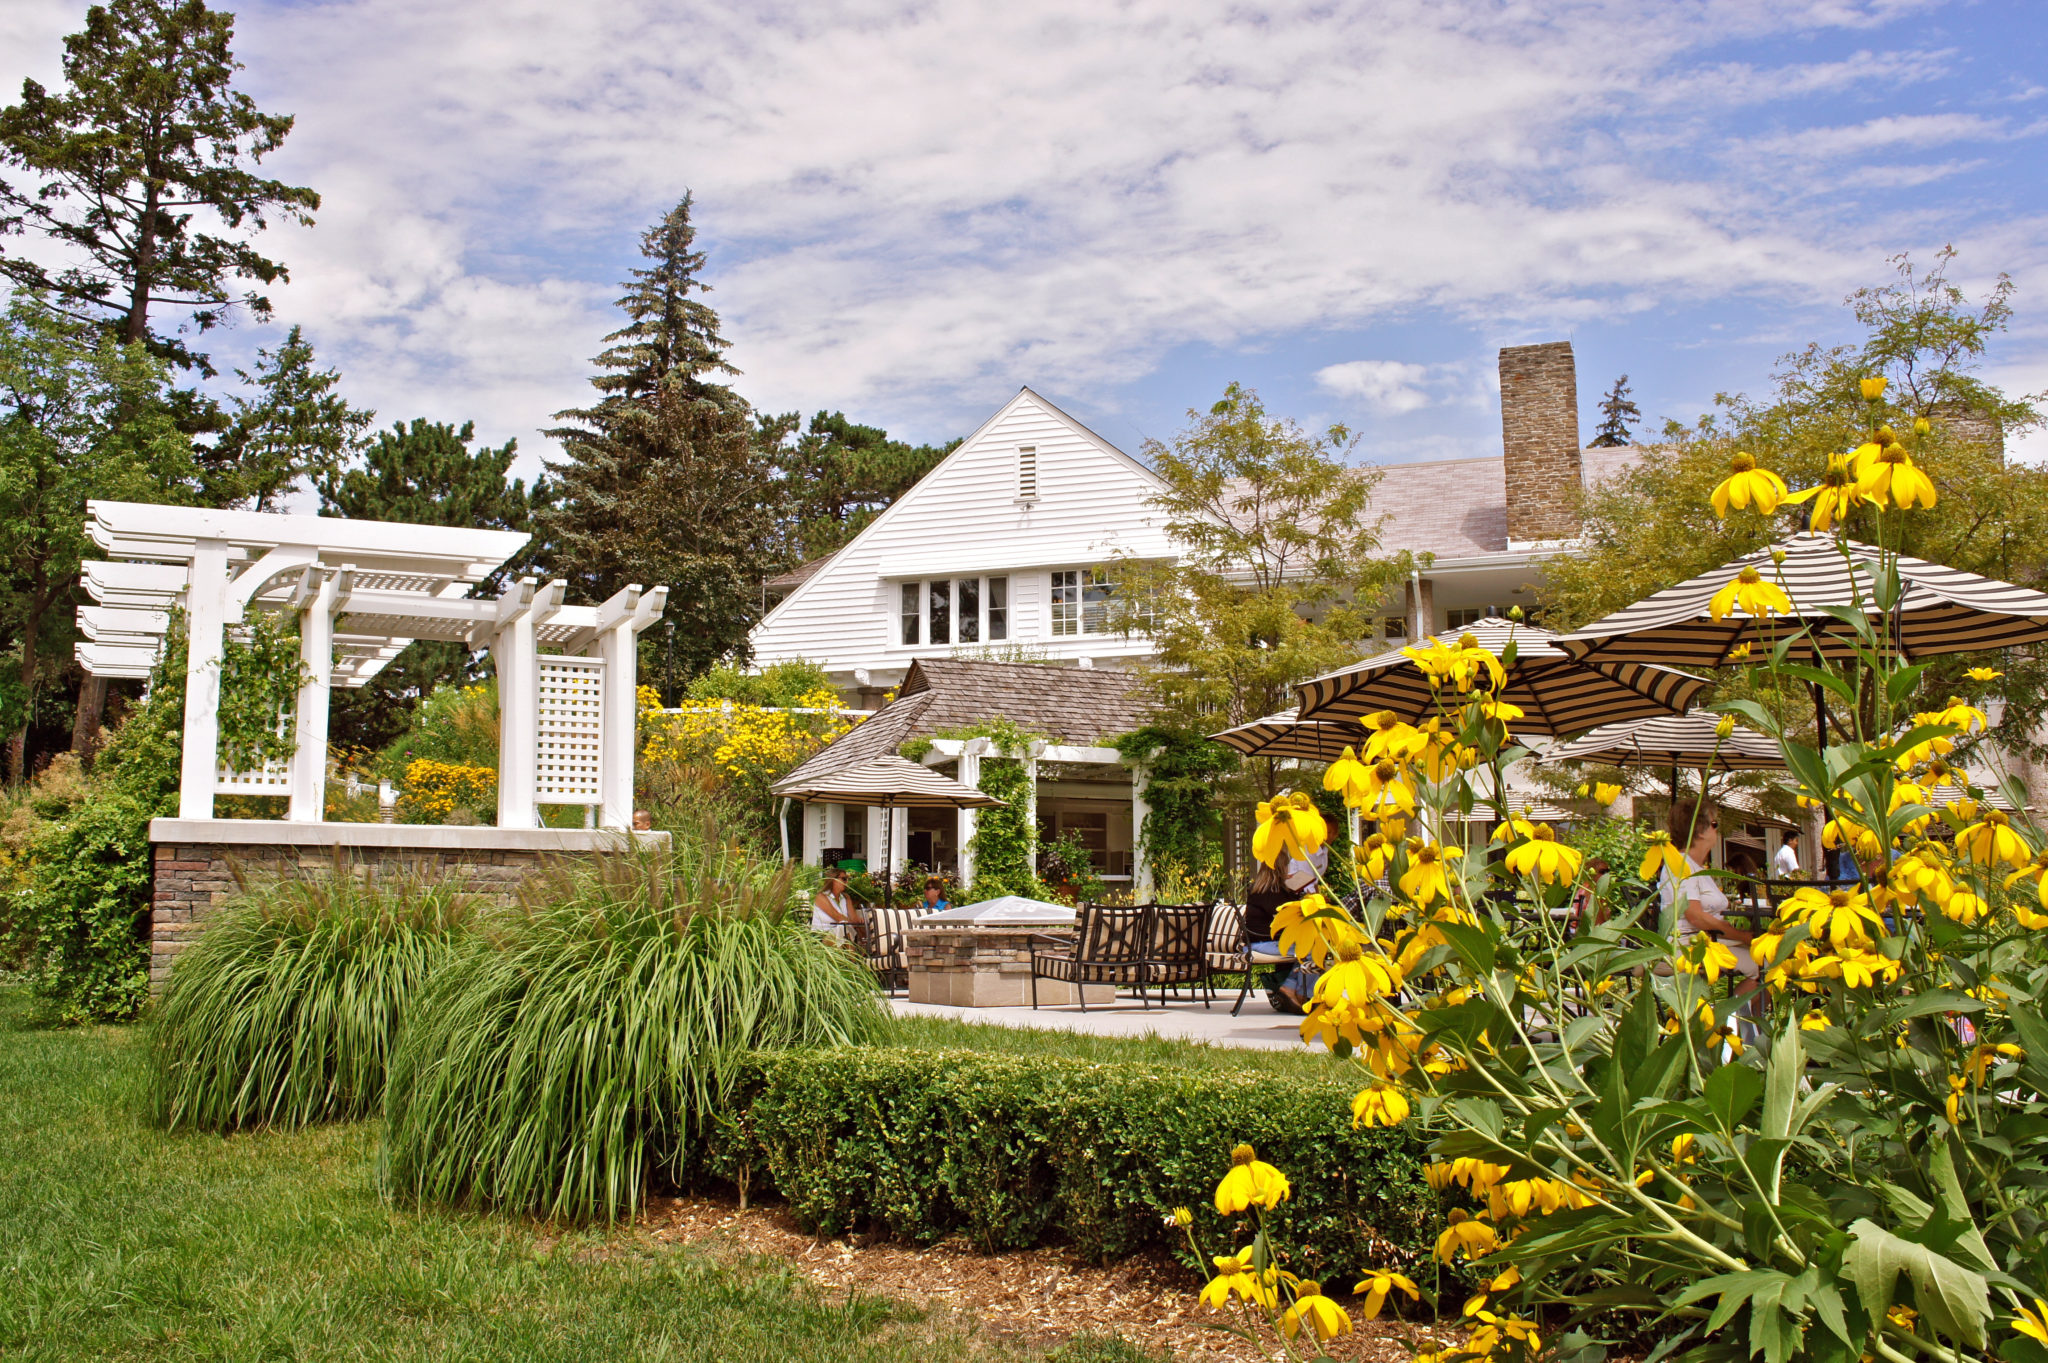 Nestled beside the clubhouse, Donalda's formal garden is bordered with flagstones and original plantings that highlight the best of each season. Fragrant and calm, it is a peaceful enclave to exchange vows of any faith.